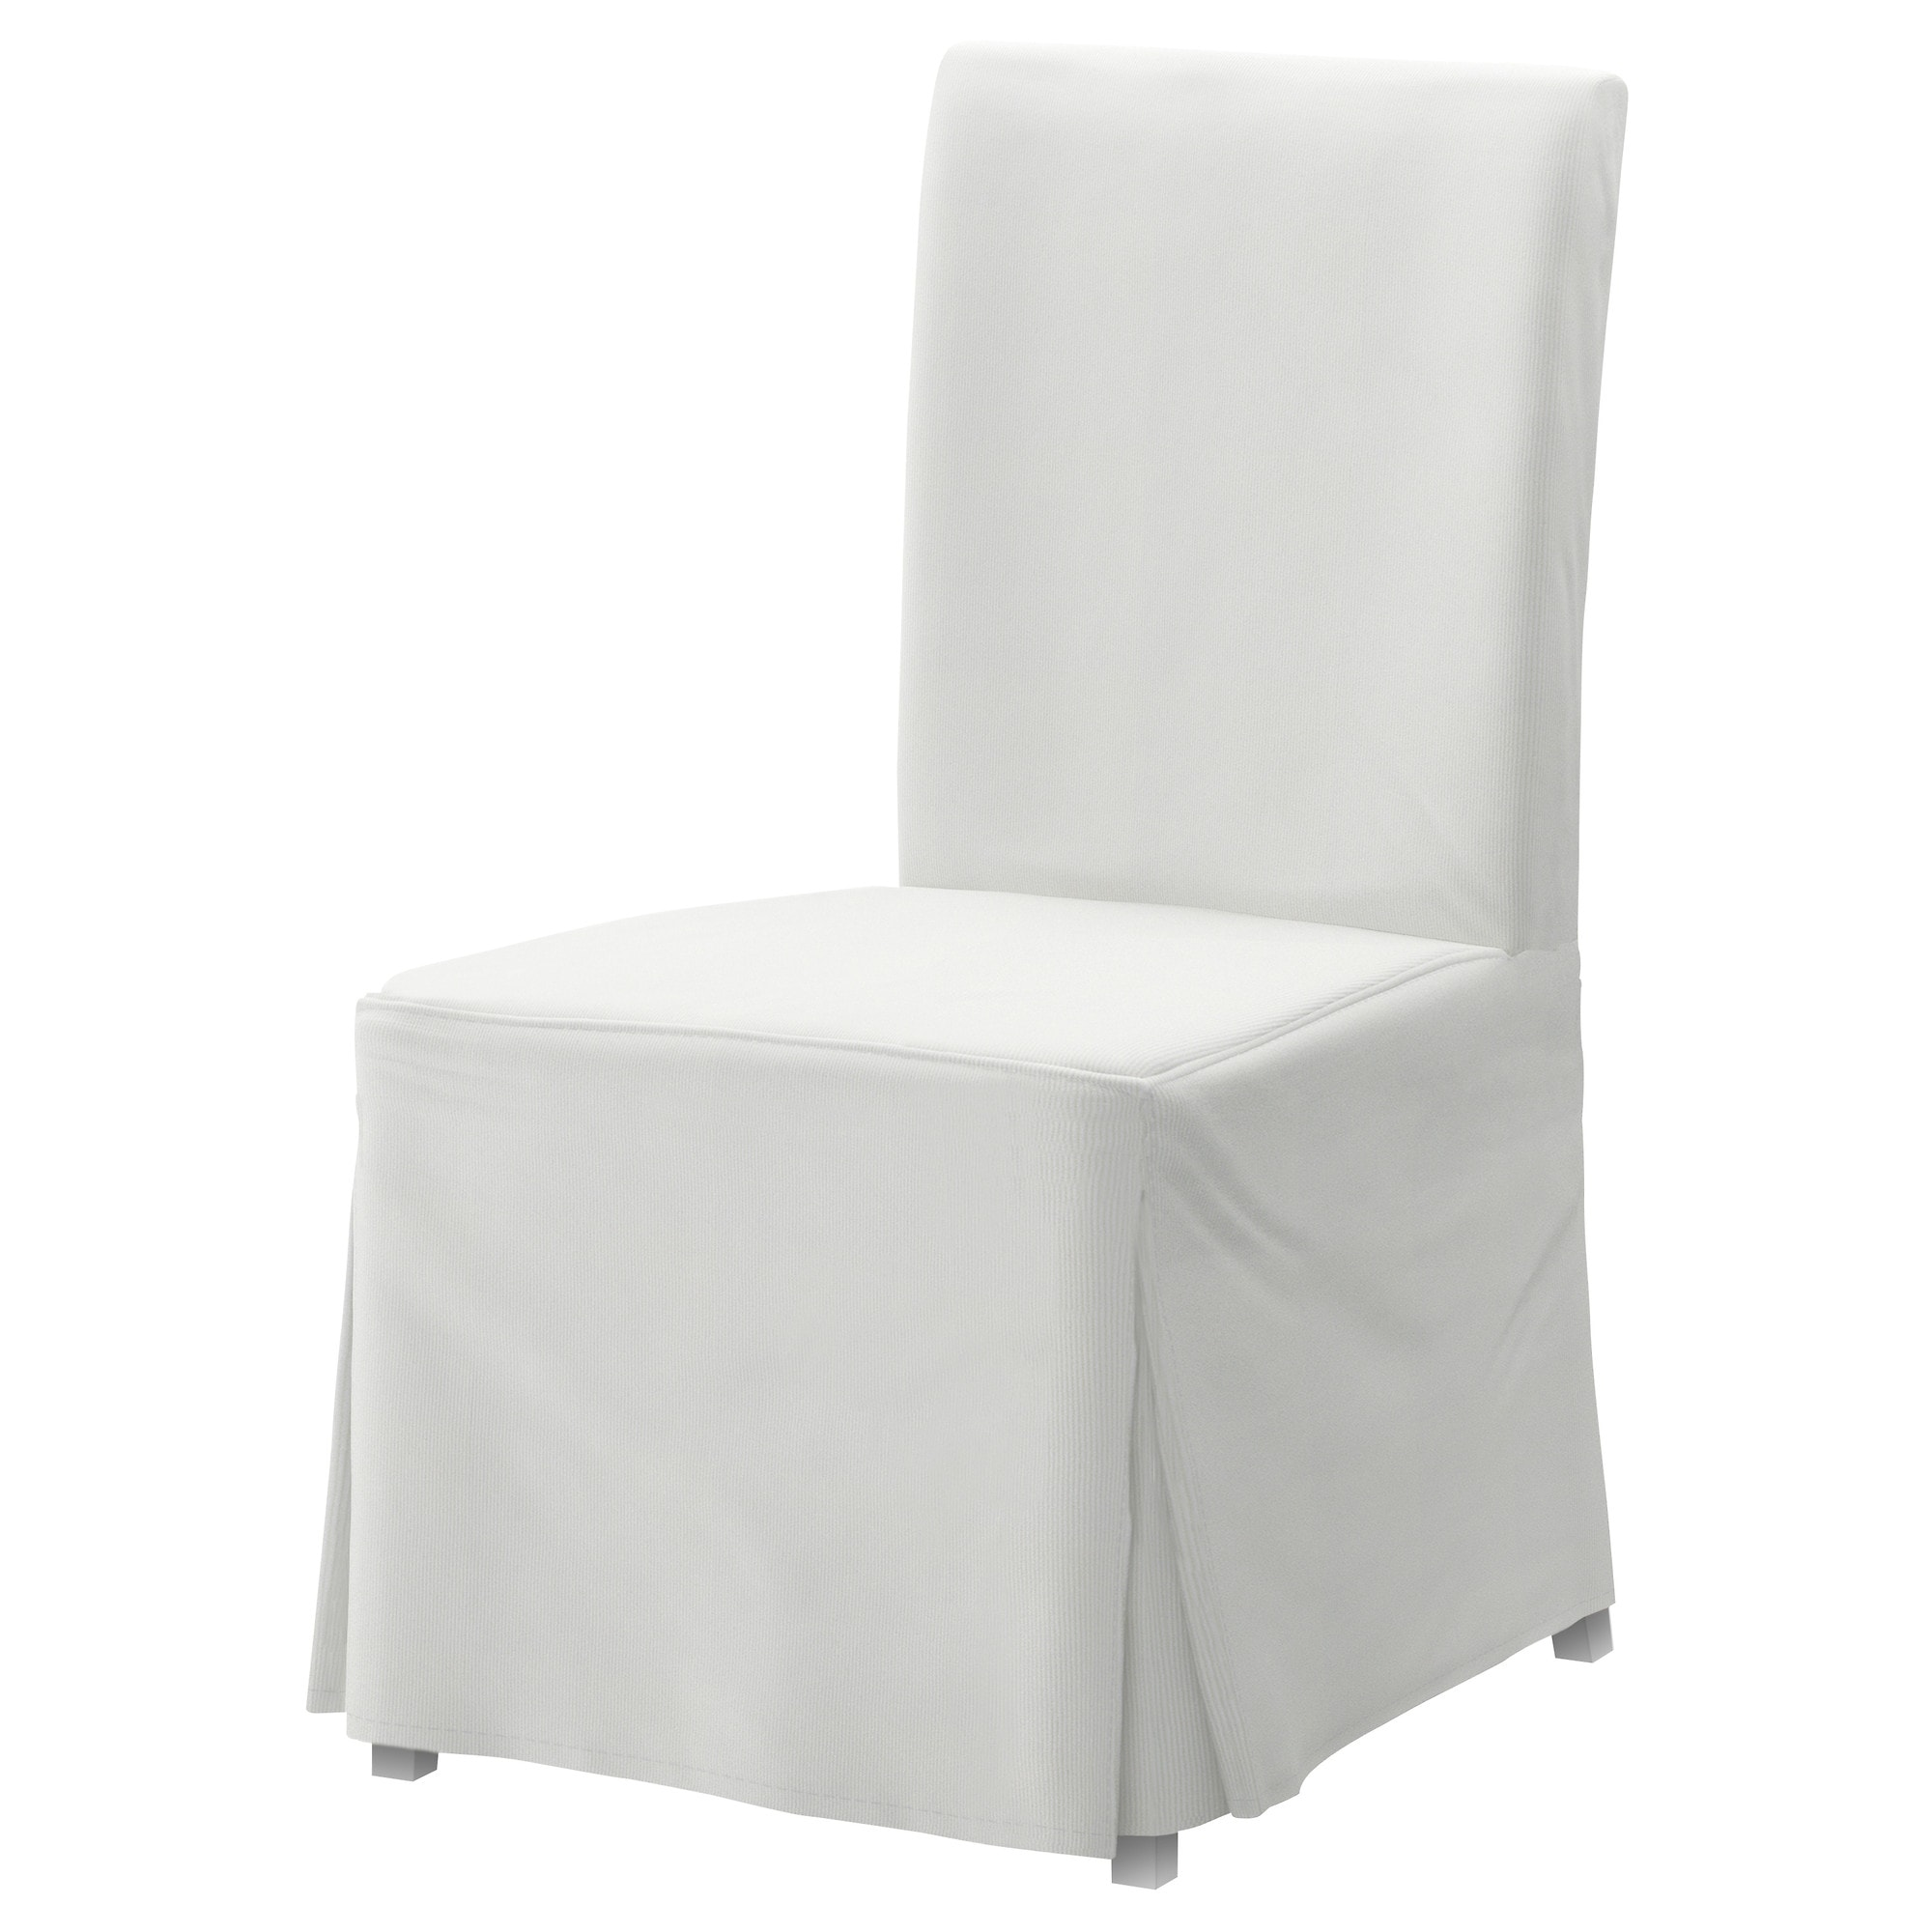 good henriksdal chair with long cover blekinge white white ikea with chaise ikea henriksdal. Black Bedroom Furniture Sets. Home Design Ideas